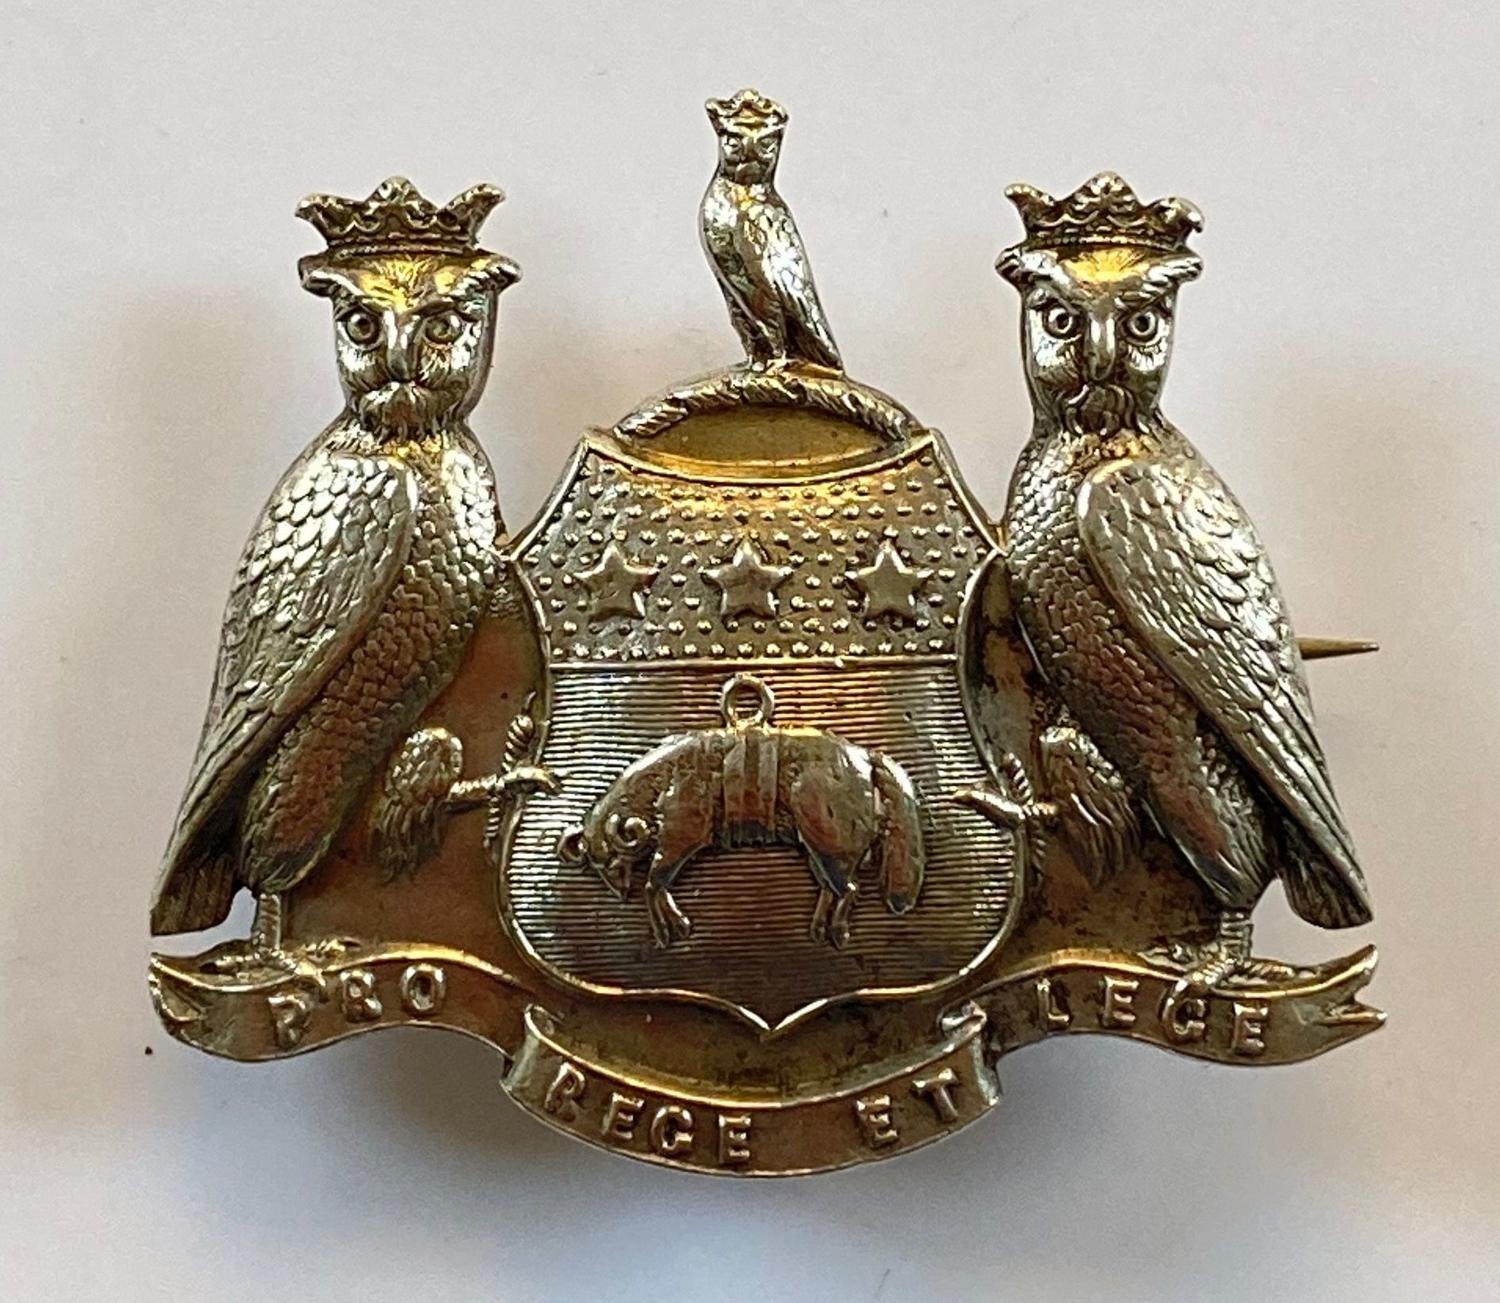 Leeds Pals rare WW1 silver Kitchener's Army cap badge